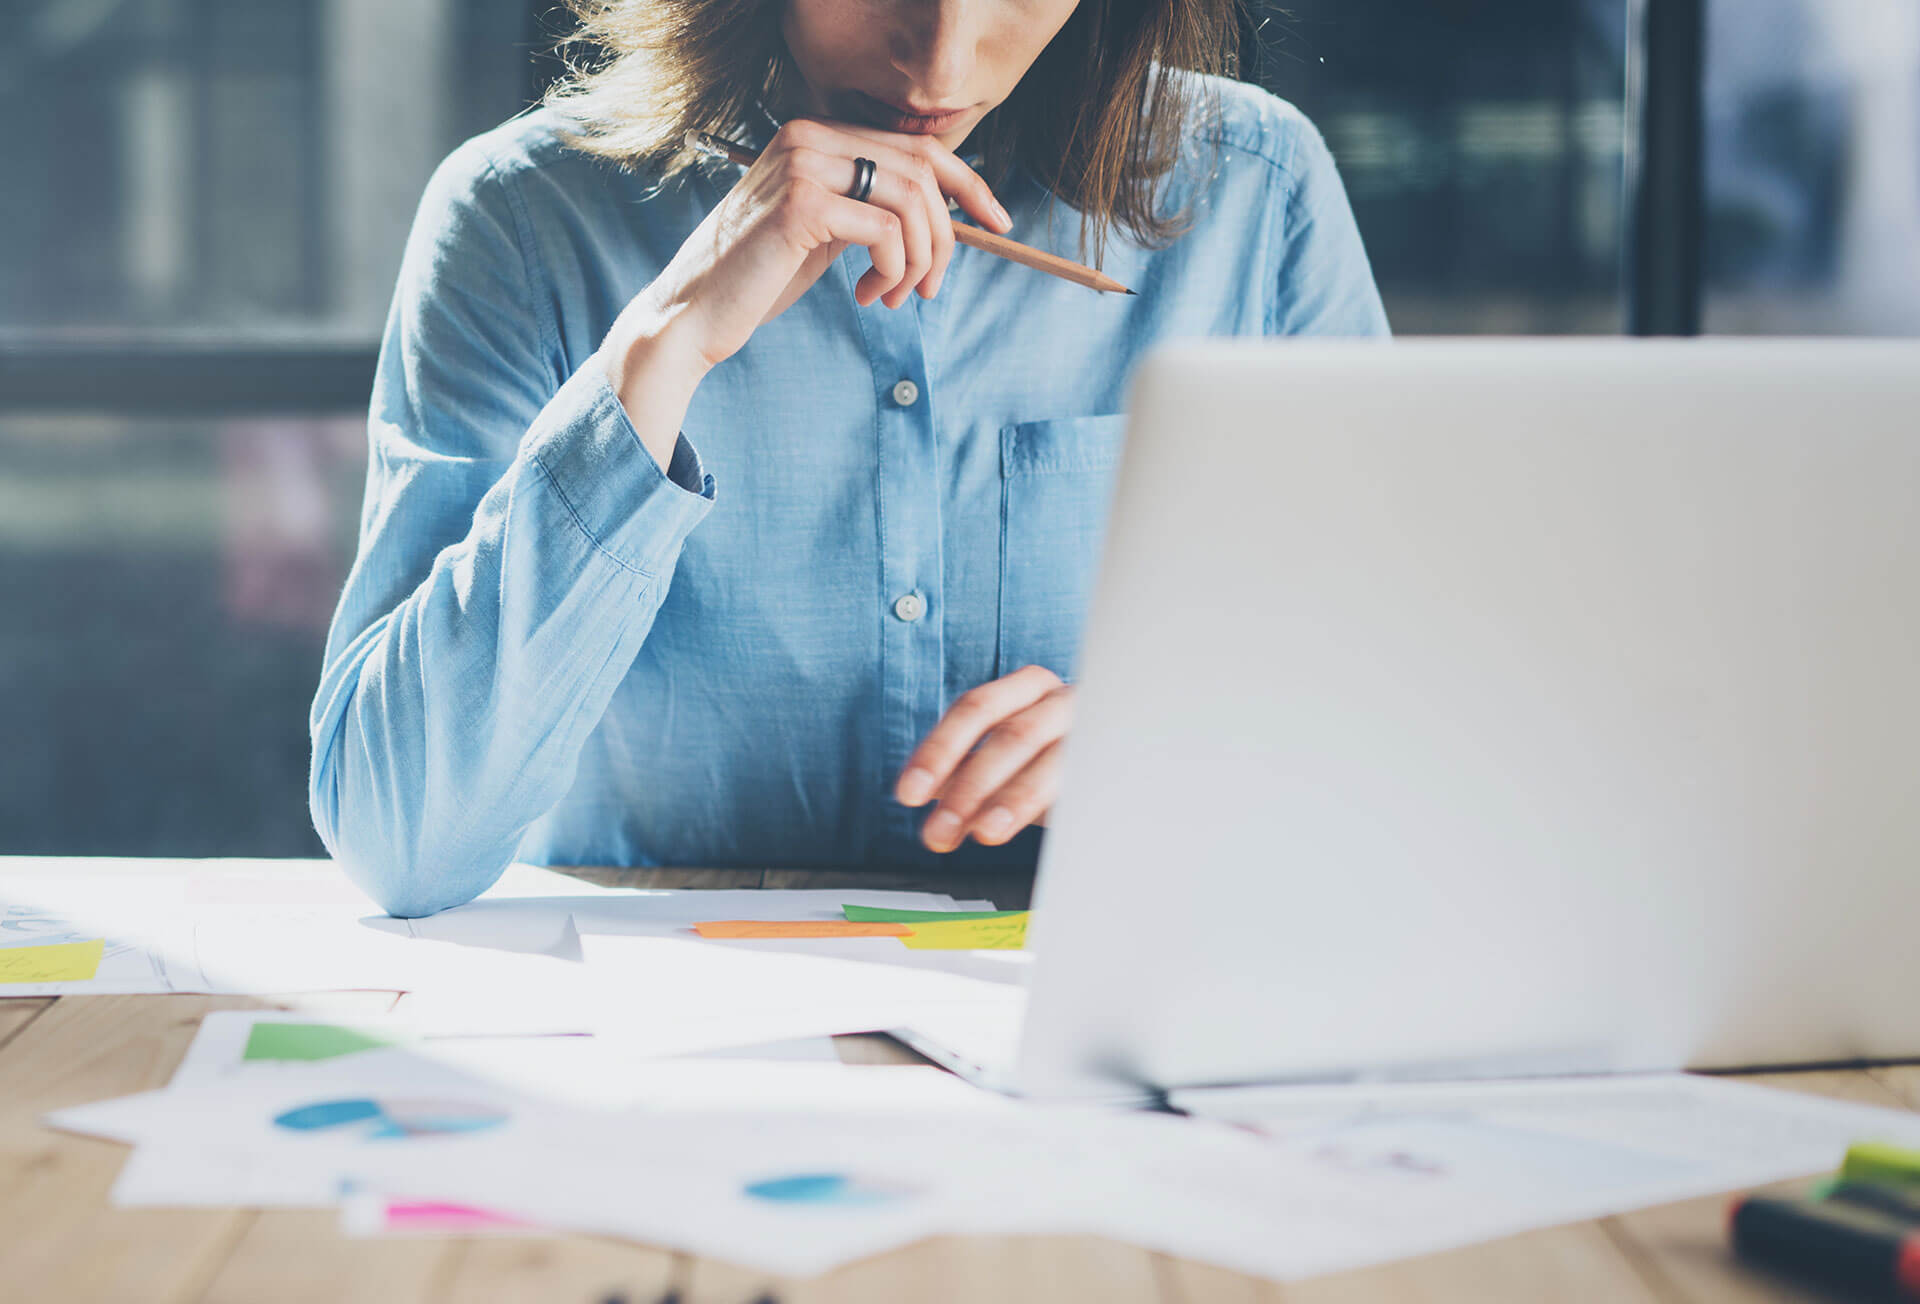 3 Businesses Anyone Can Start With No Money